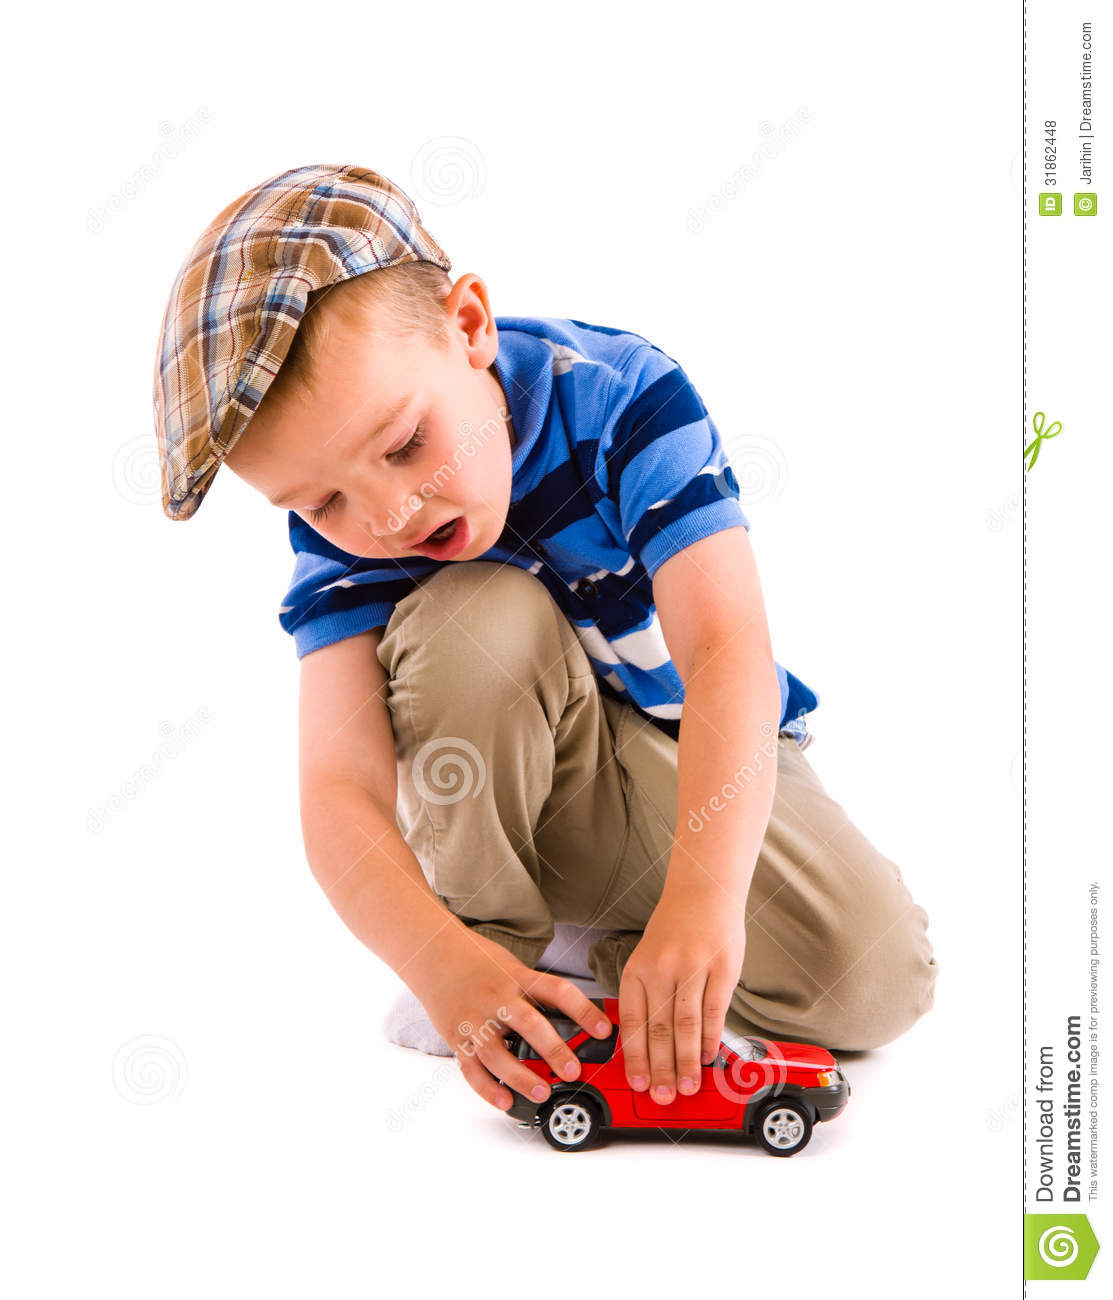 Little Boy With Toy Car : Boy and toy car royalty free stock photos image